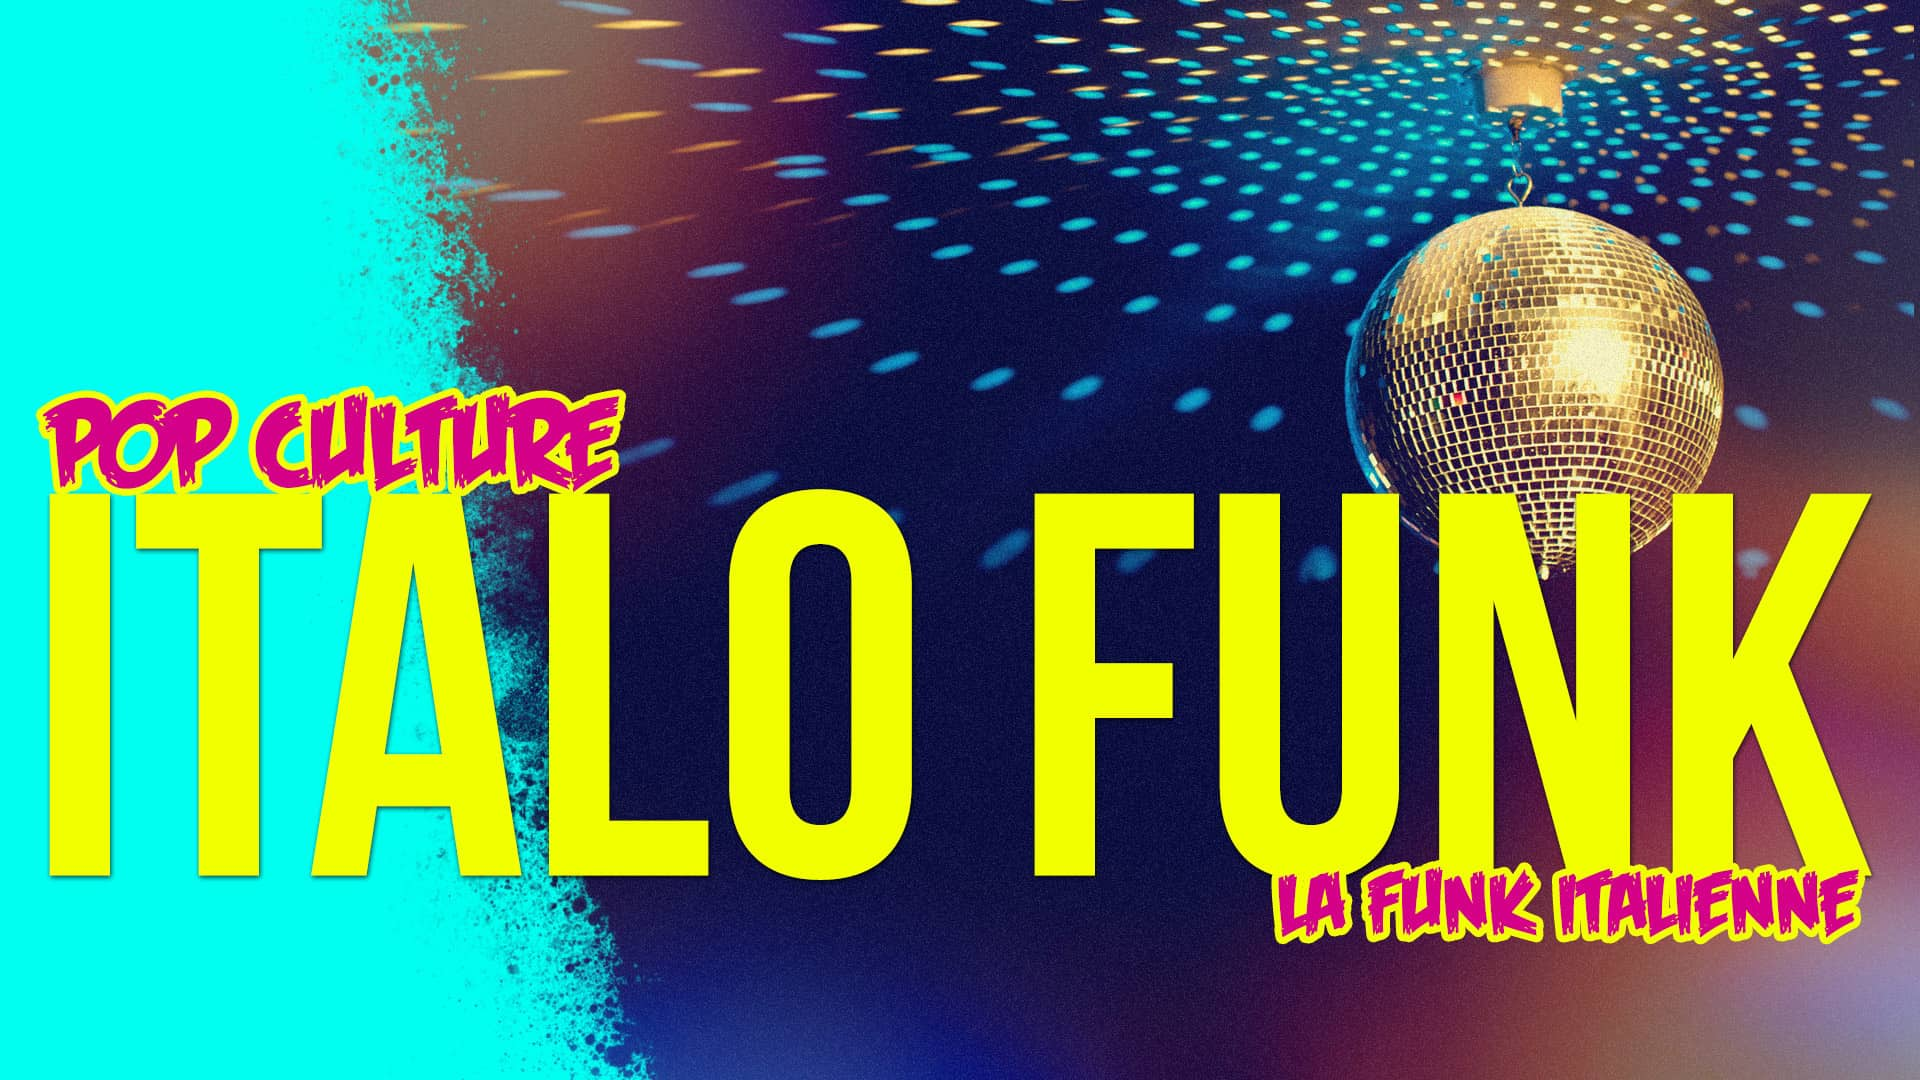 Pop Culture - Italo Funk | Blog In Lyon